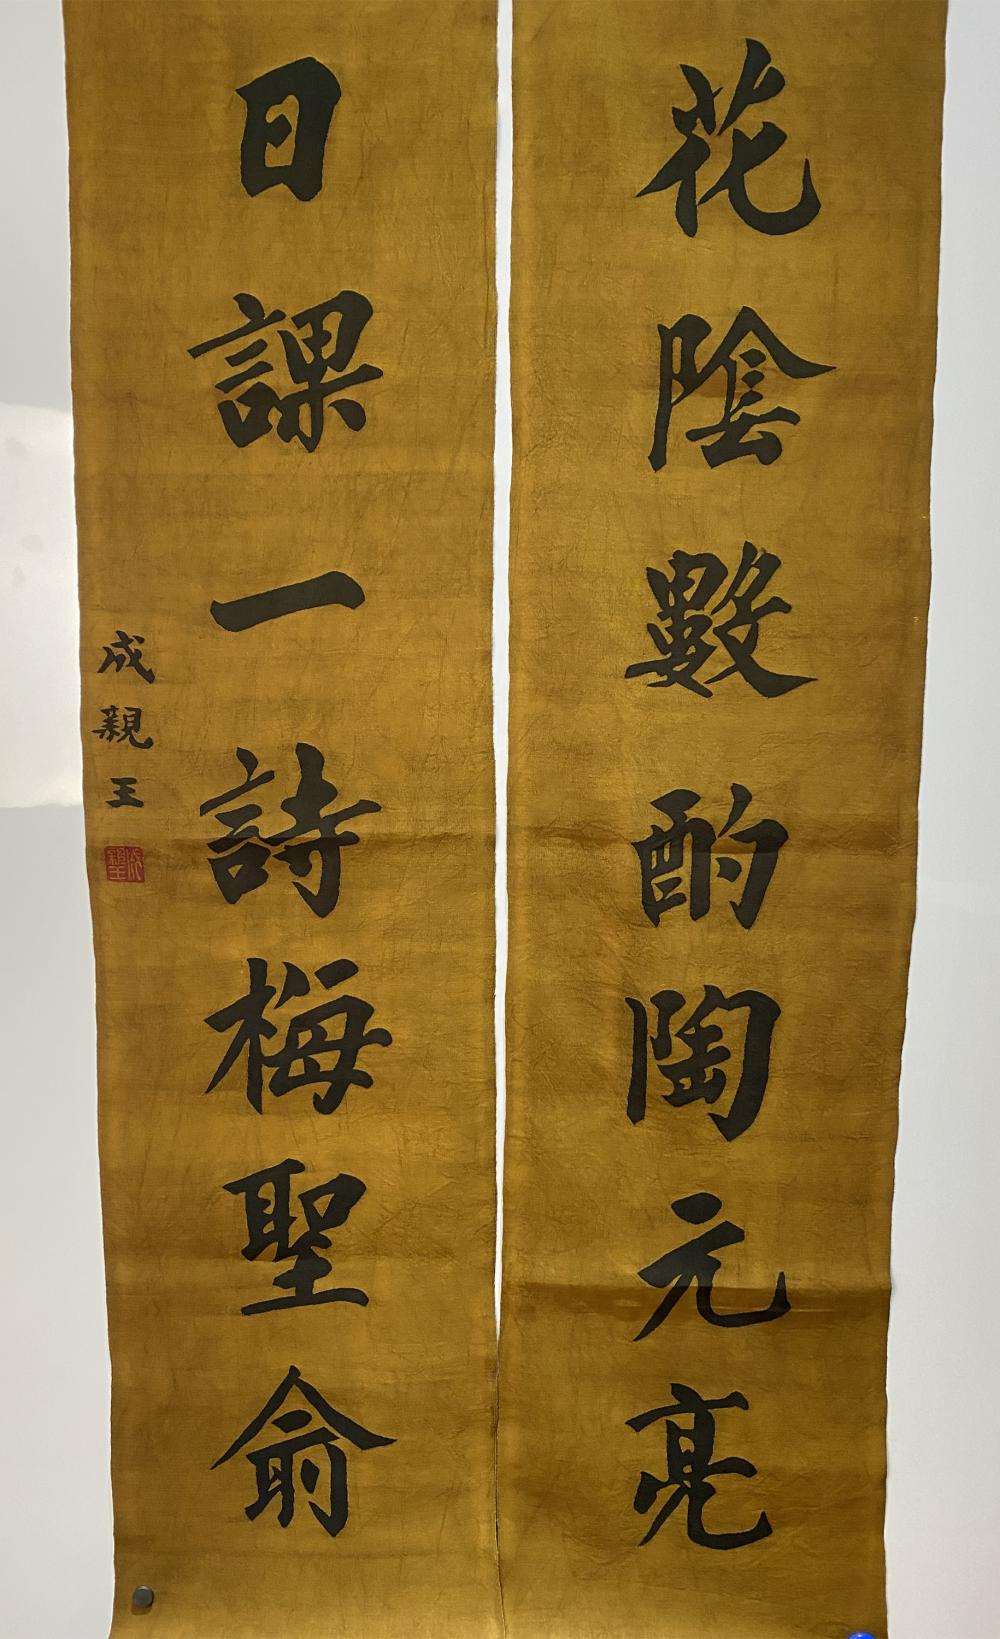 Chengqinwang, a pair of poetry and essays